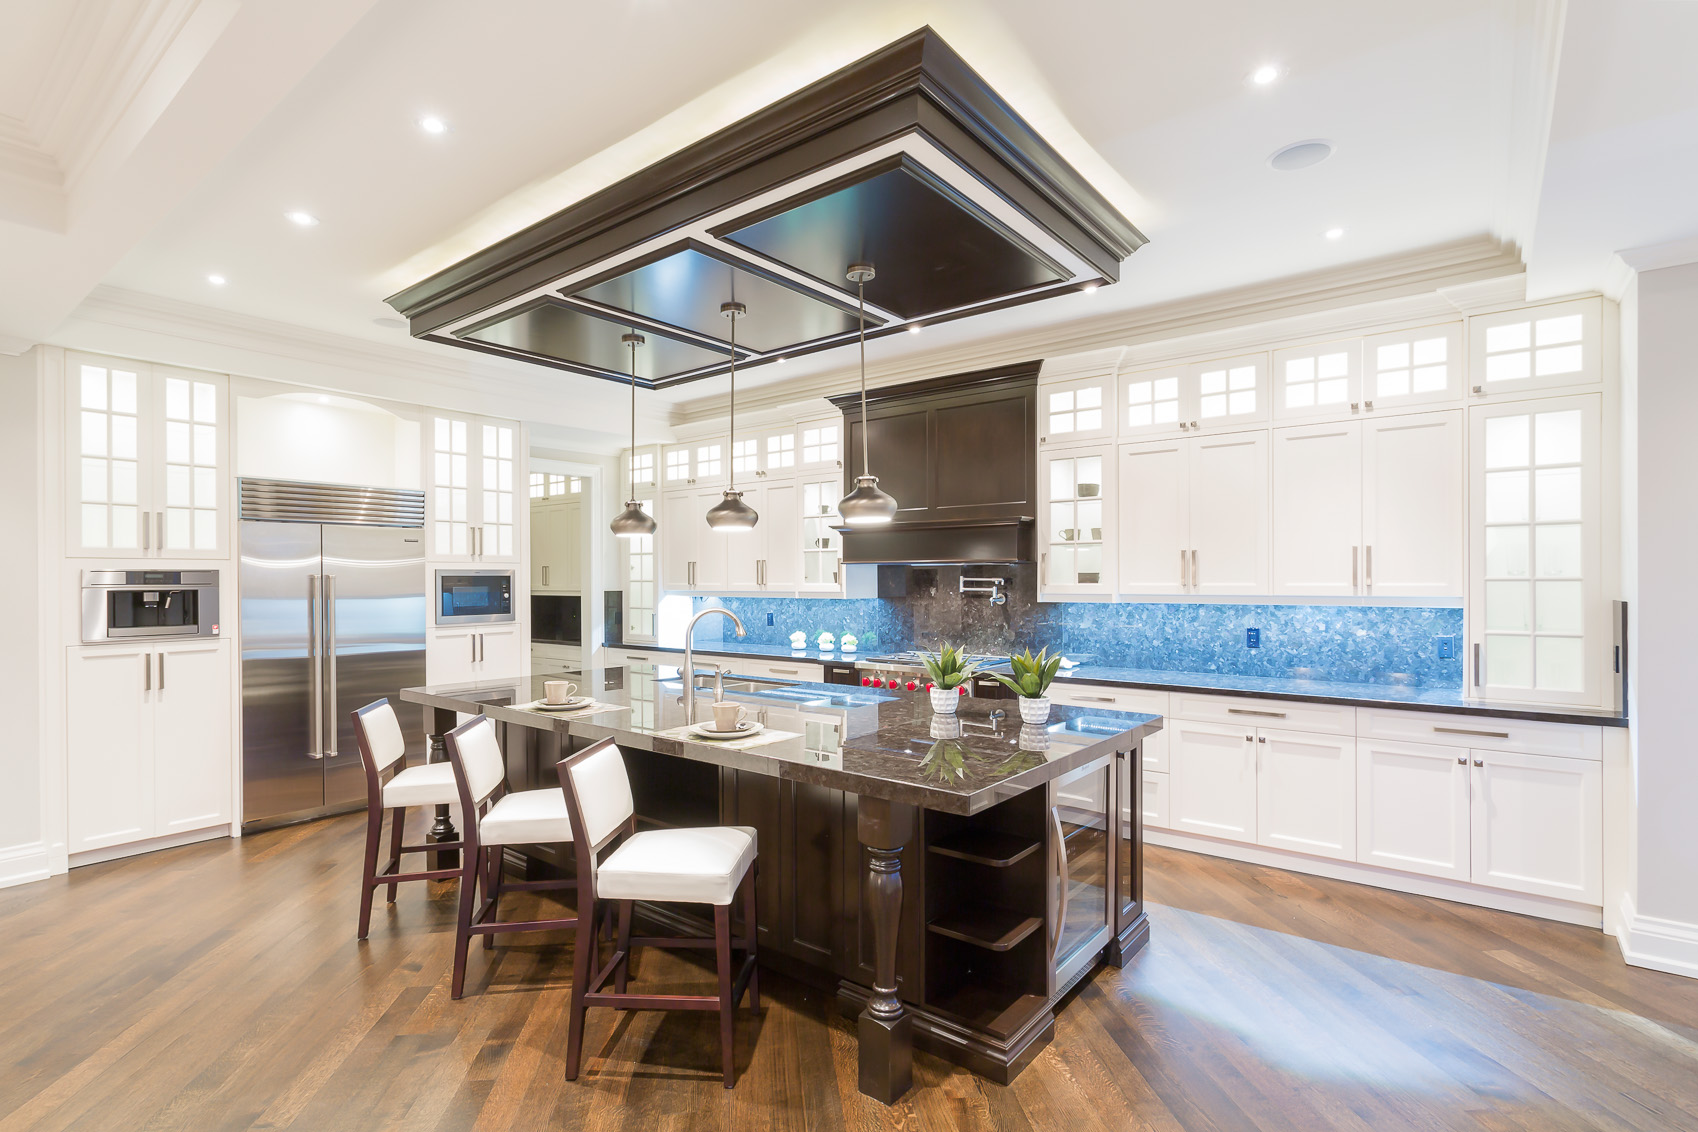 dreamview kitchens custom kitchens and cabinetry in toronto rh dreamviewkitchens com